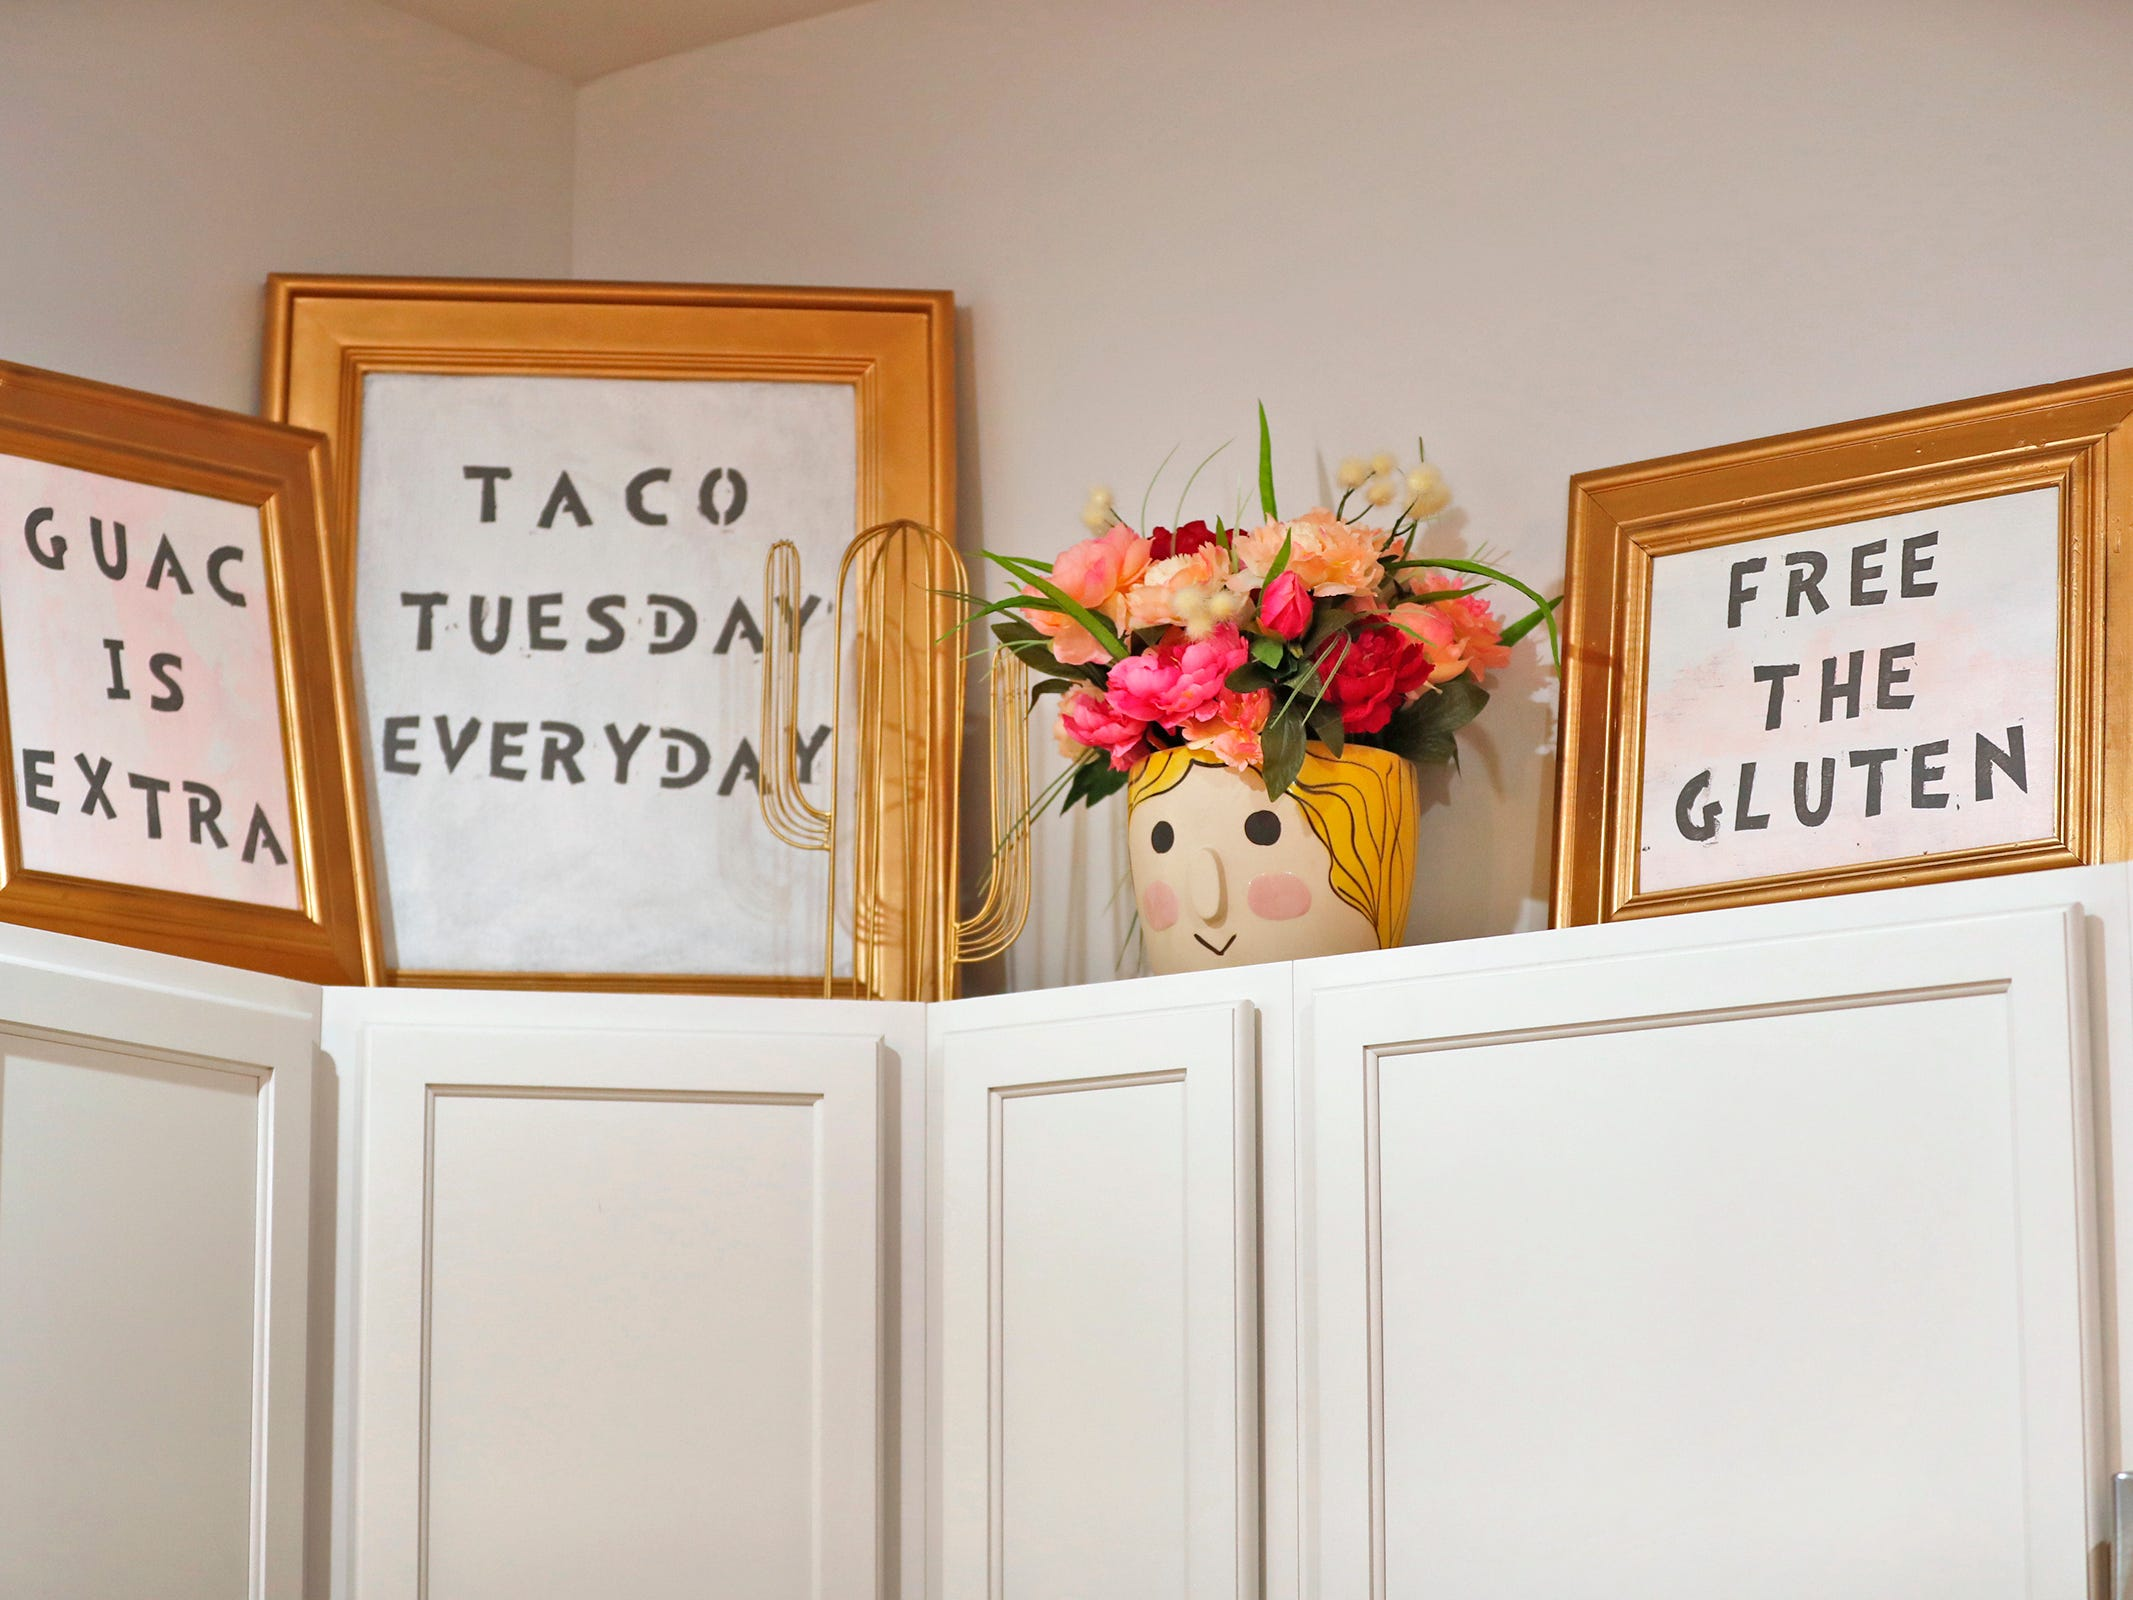 AirBnb owner Felicia Kiesel loves tacos, and her kitchen notes that taco Tuesday is everyday, as seen in the kitchen at 804 N. Keystone Ave., Monday, Dec. 3, 2018.